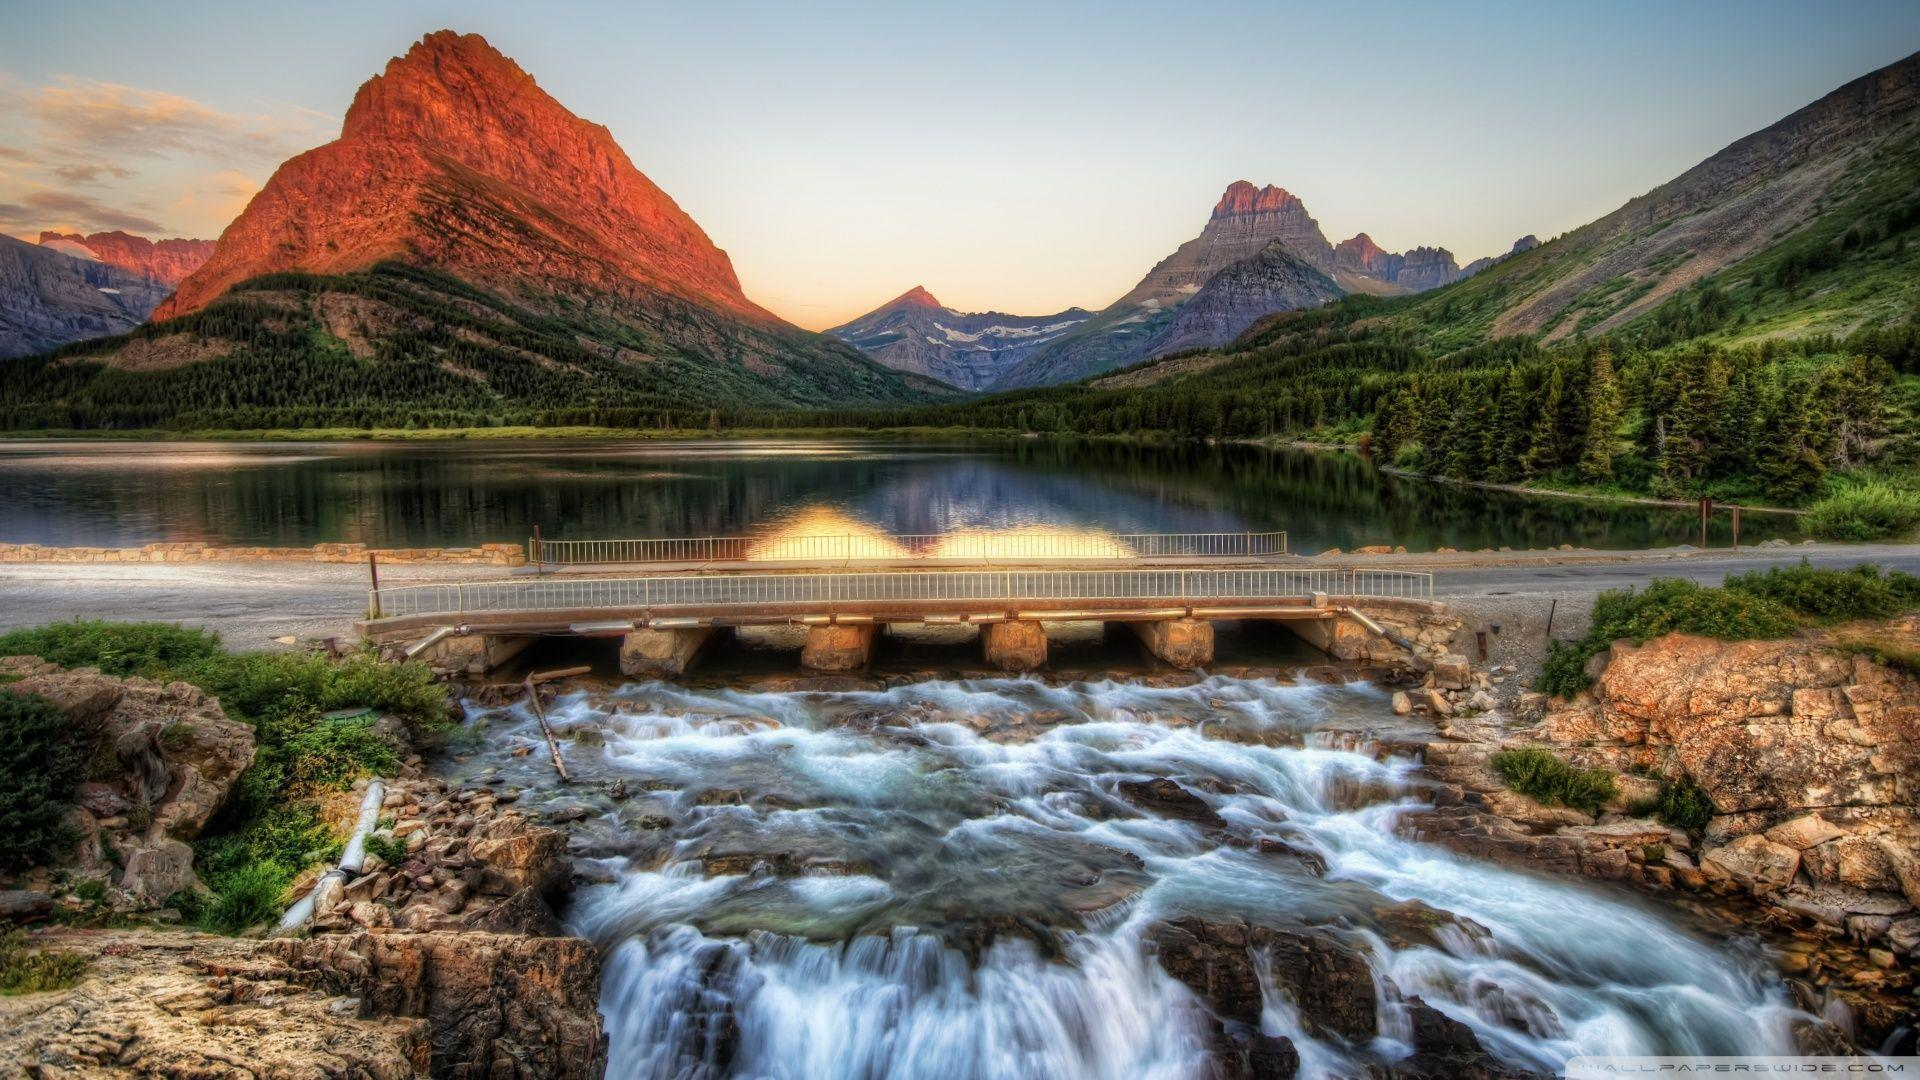 Rocky Mountains Wallpapers, Awesome 40 Rocky Mountains Wallpapers